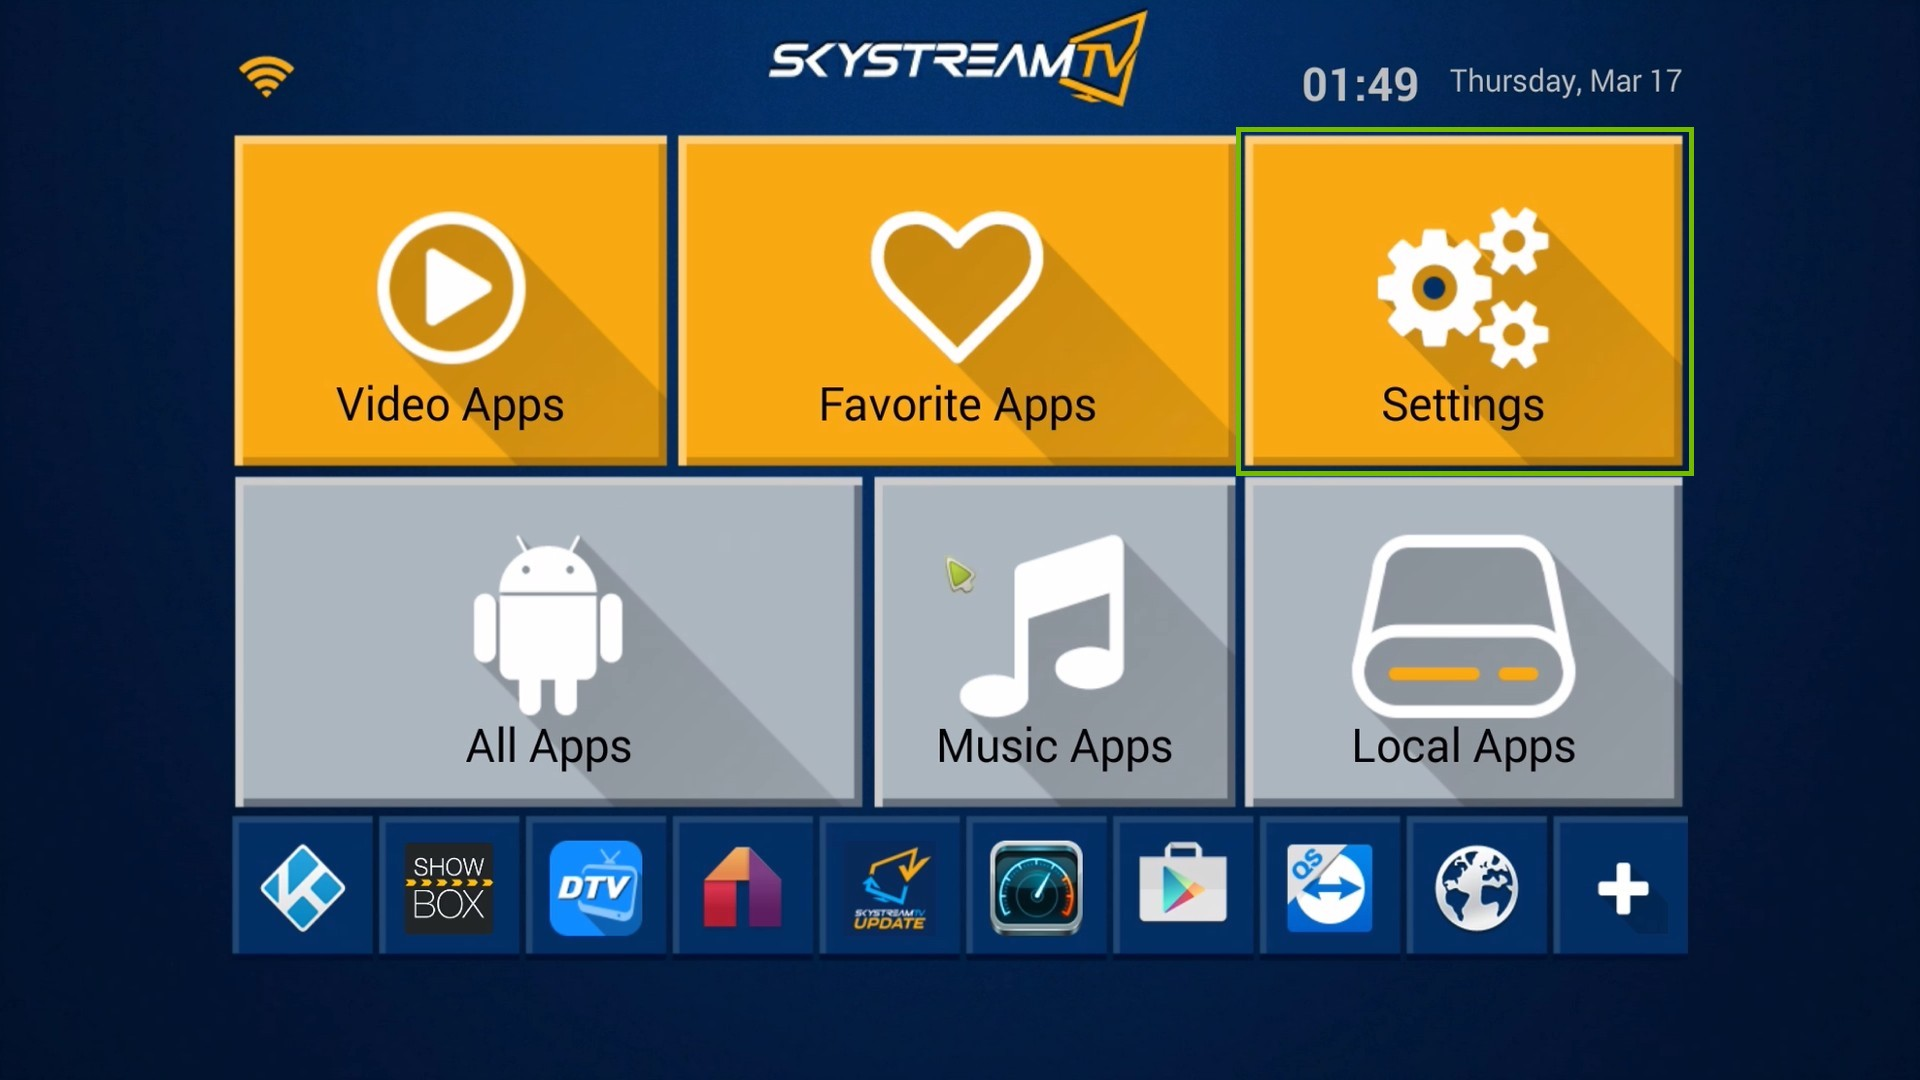 SkyStream One home screen, highlighting the Settings icon.